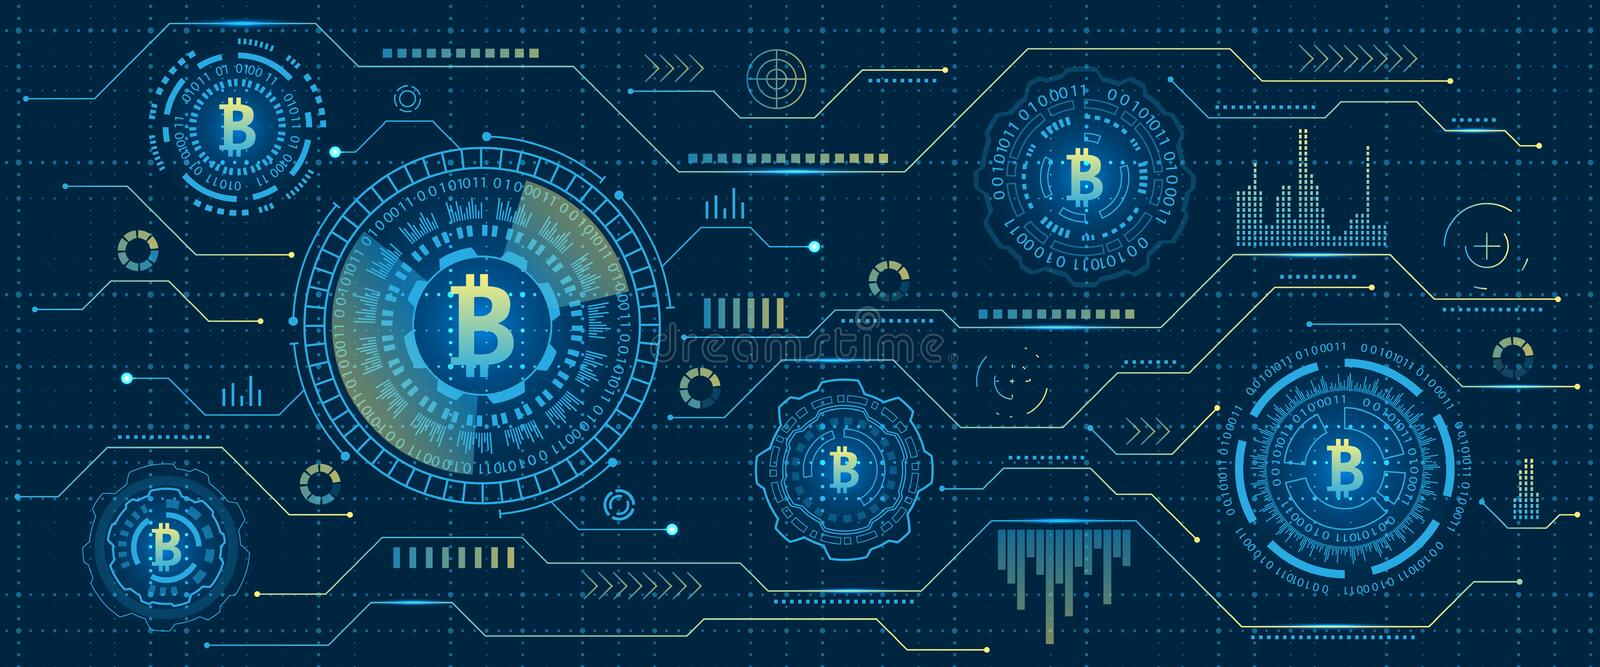 Mining Bitcoin Cryptocurrency, Digital Stream. Futuristic Money. Blockchain. Cryptography stock illustration